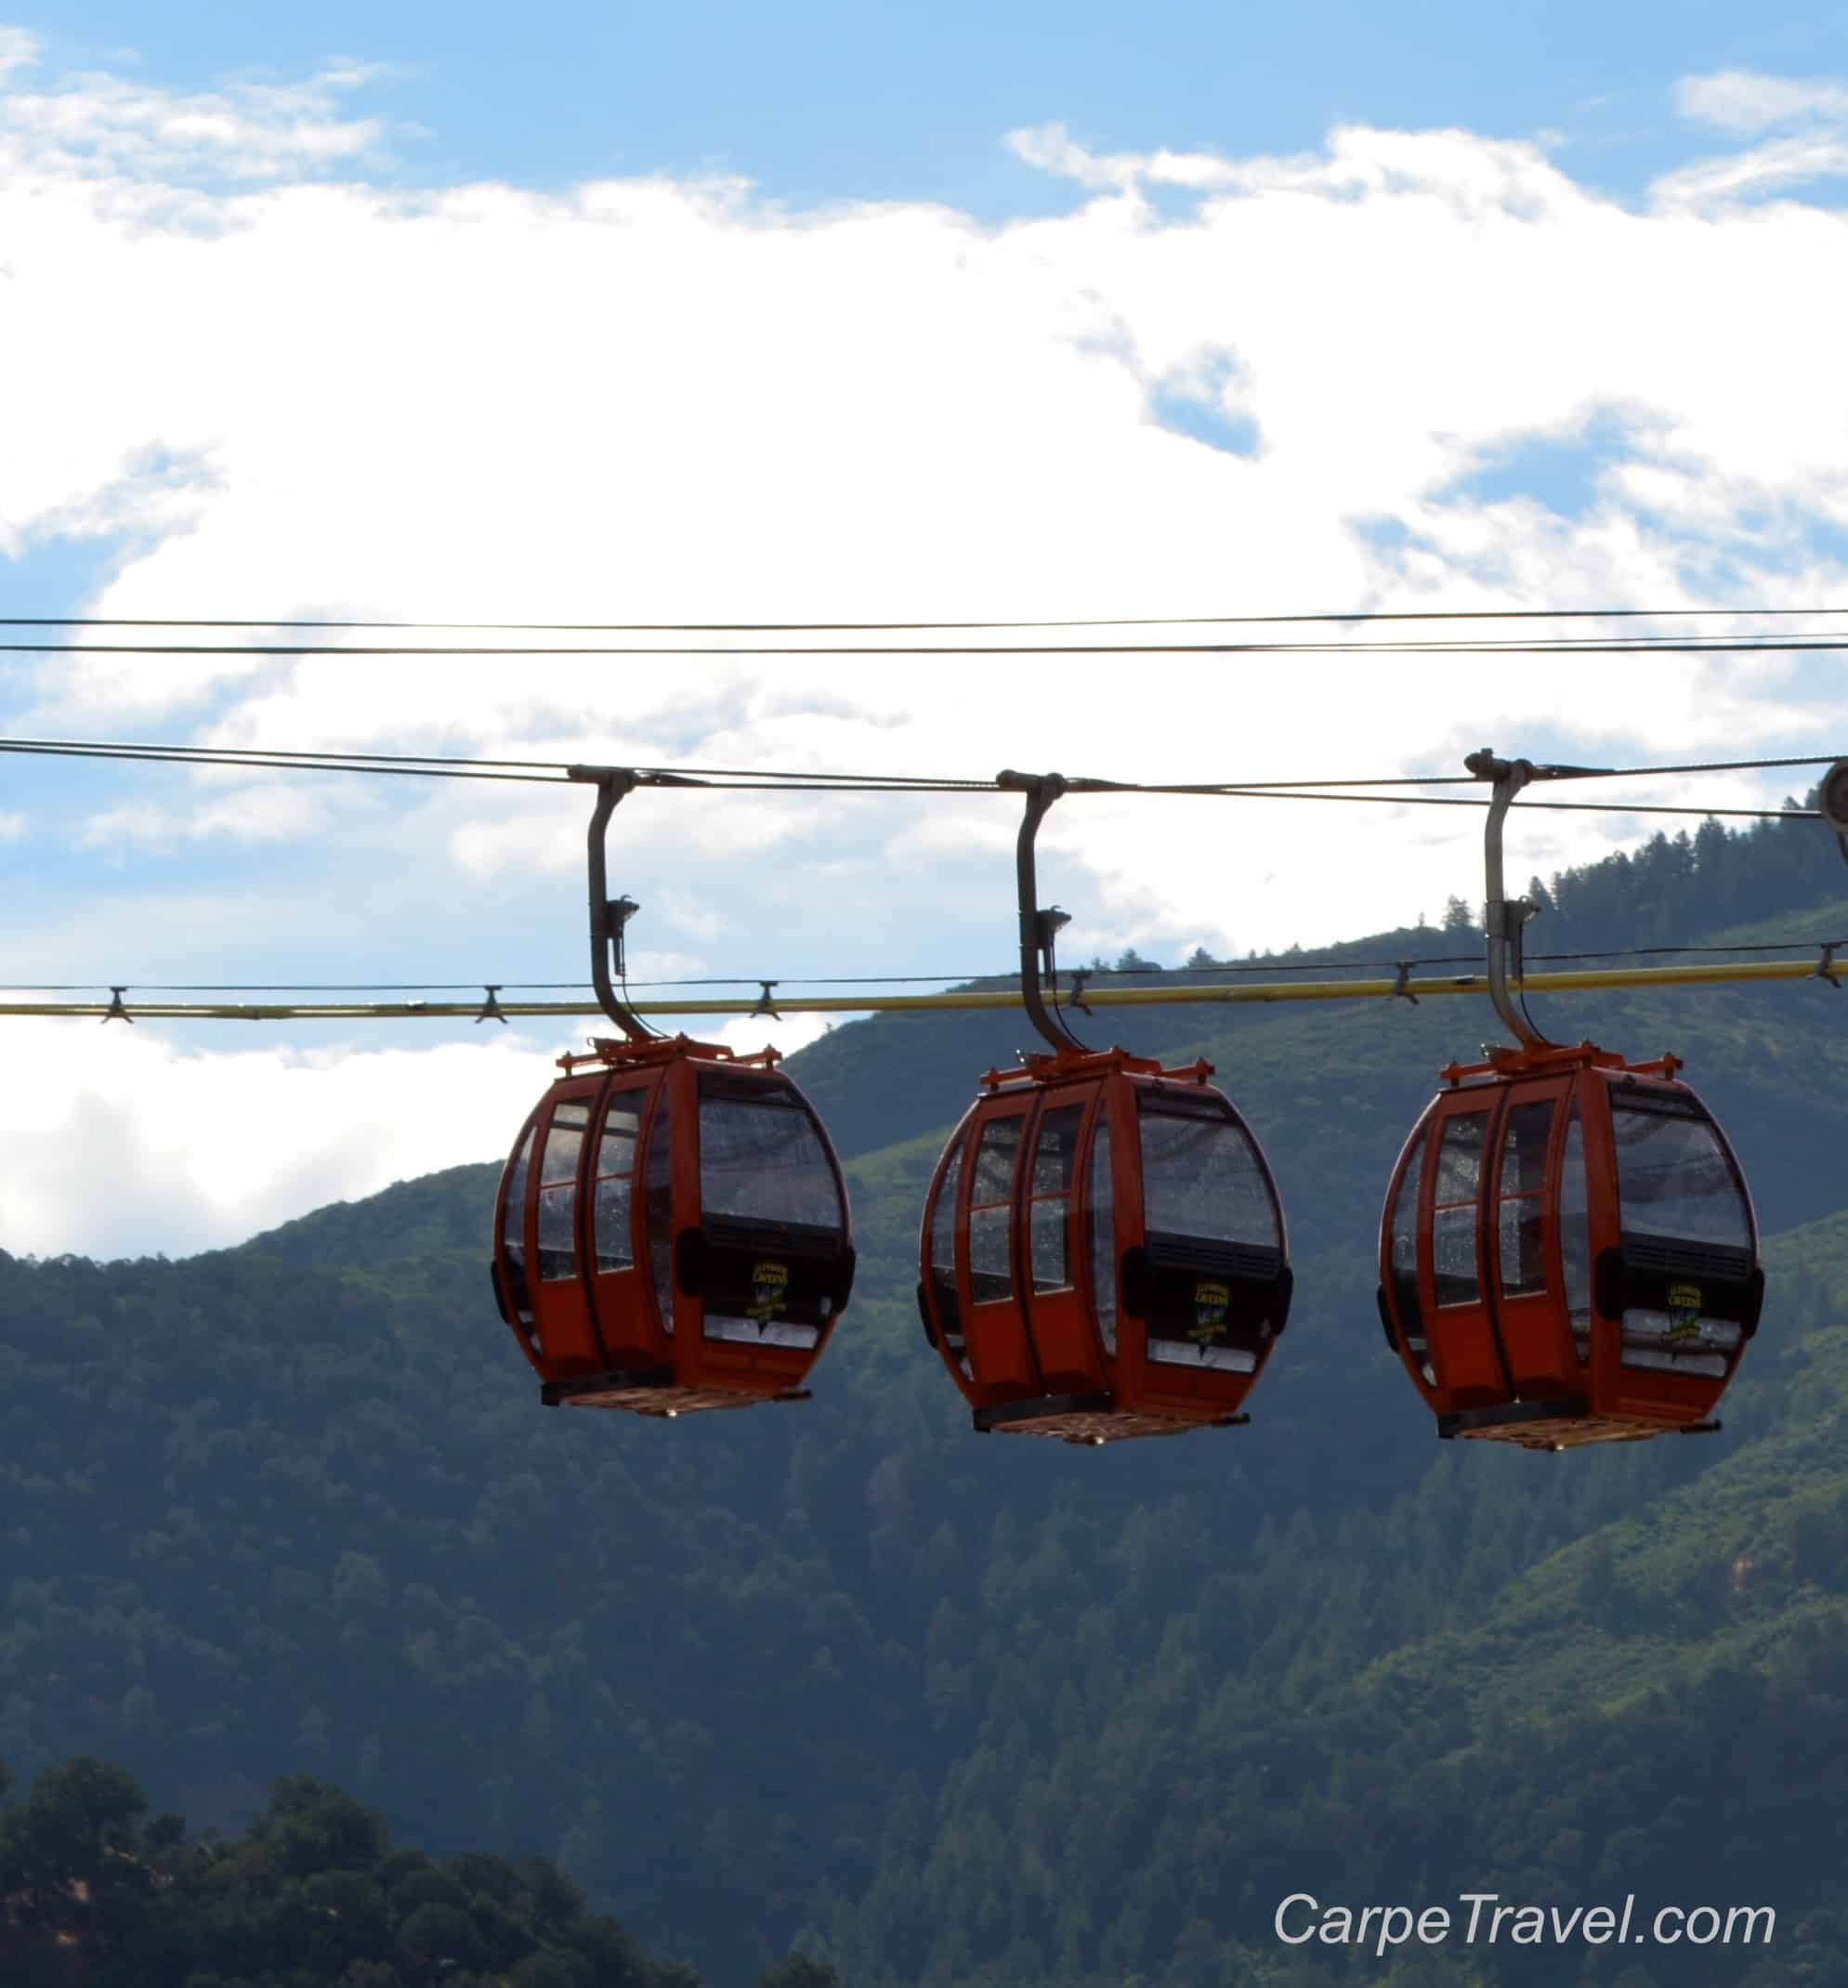 Colorado Springs Or Denver Where Should You Live: Top Three Things To Do In Glenwood Springs